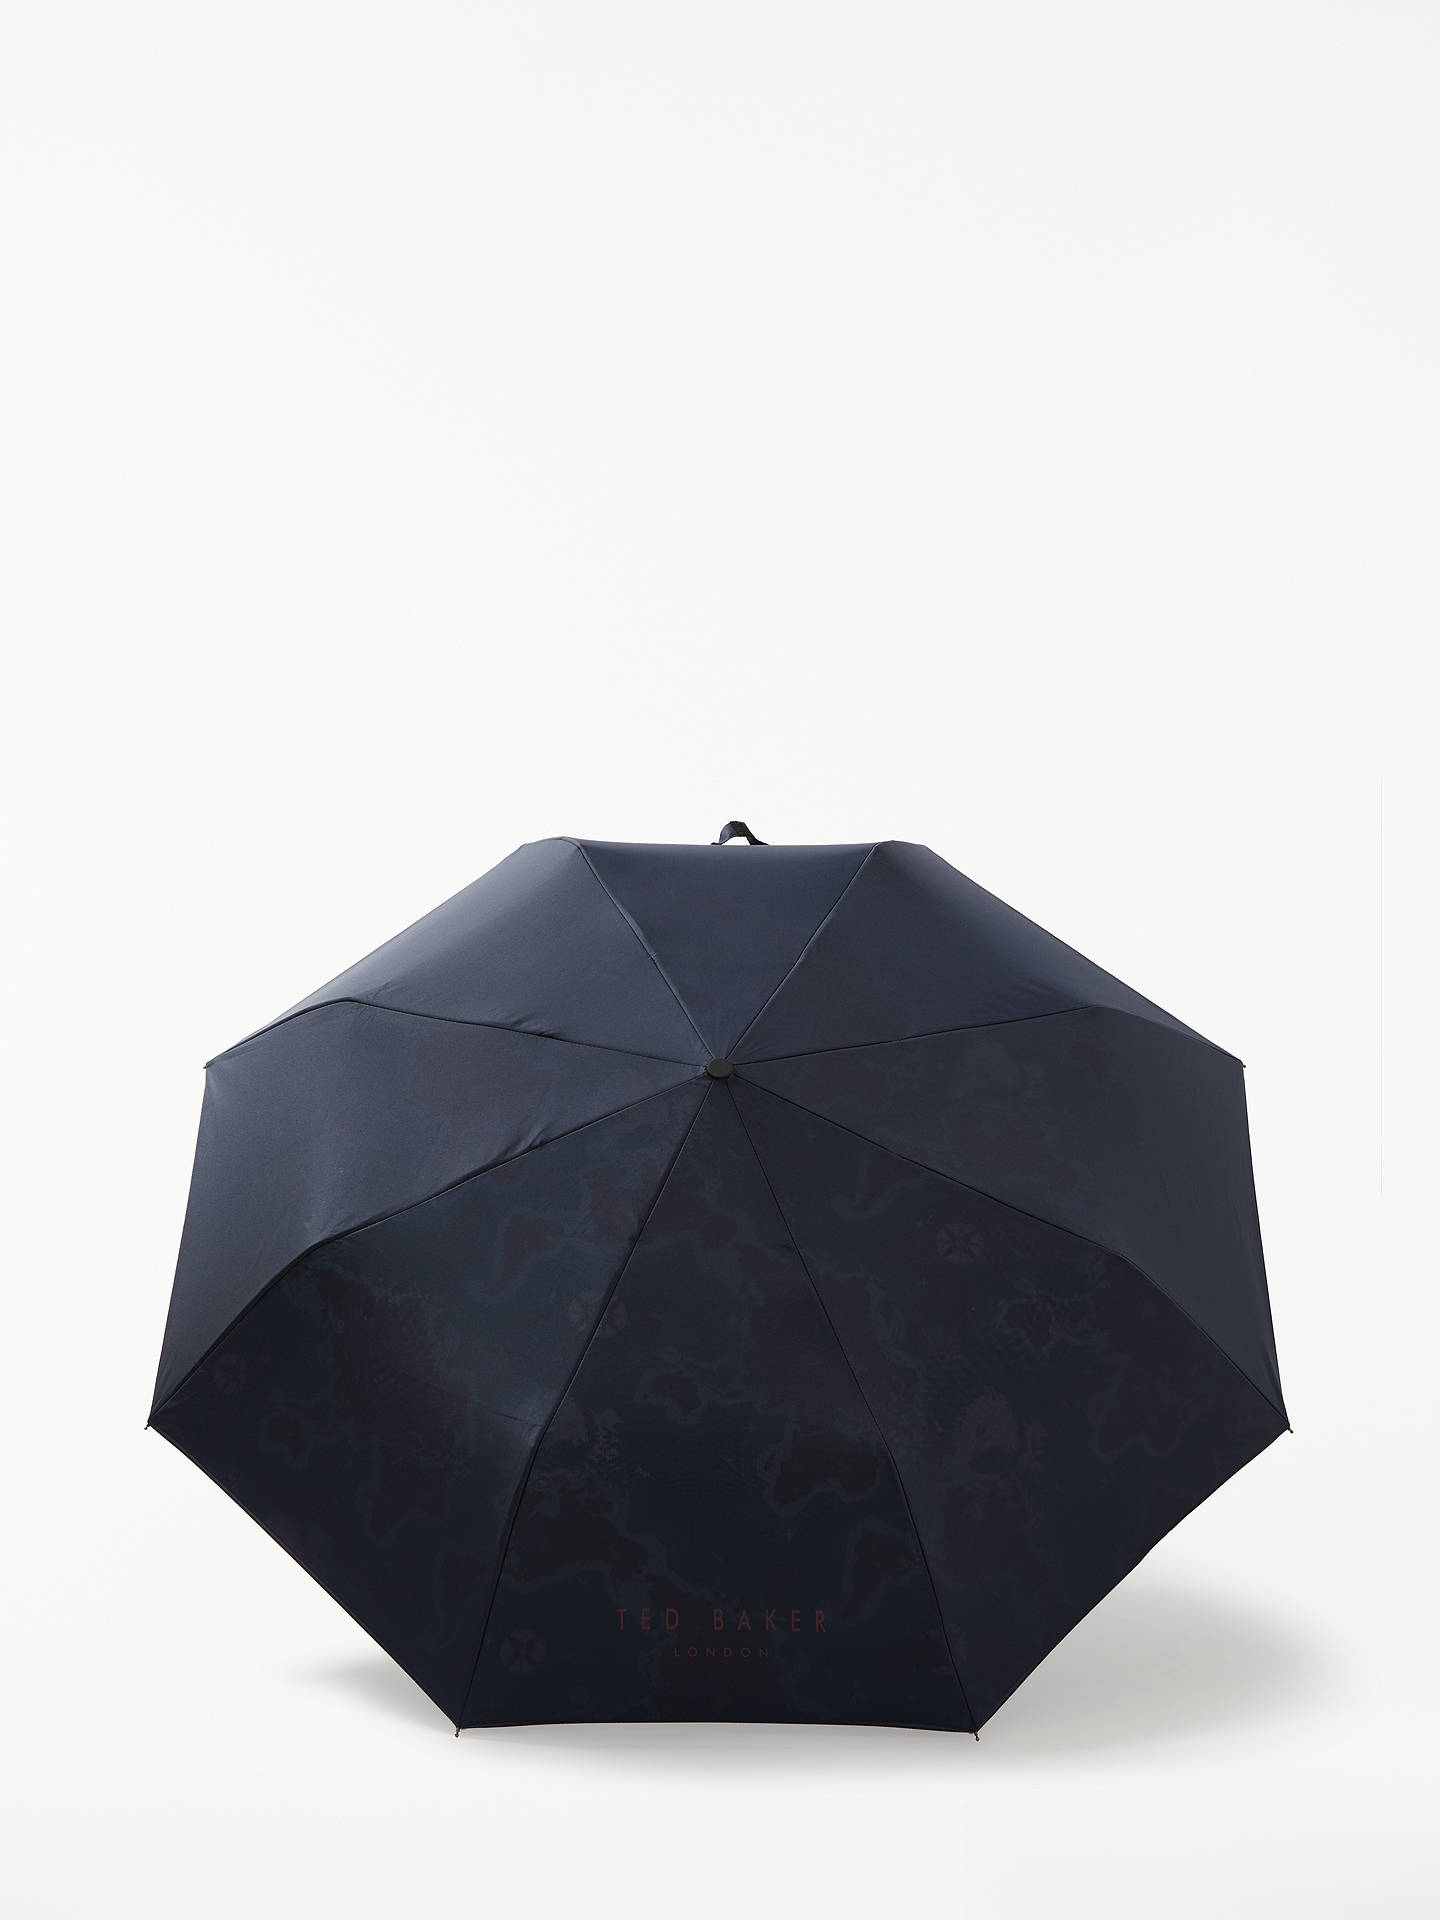 BuyTed Baker Geog Printed Compact Umbrella, Navy Online at johnlewis.com